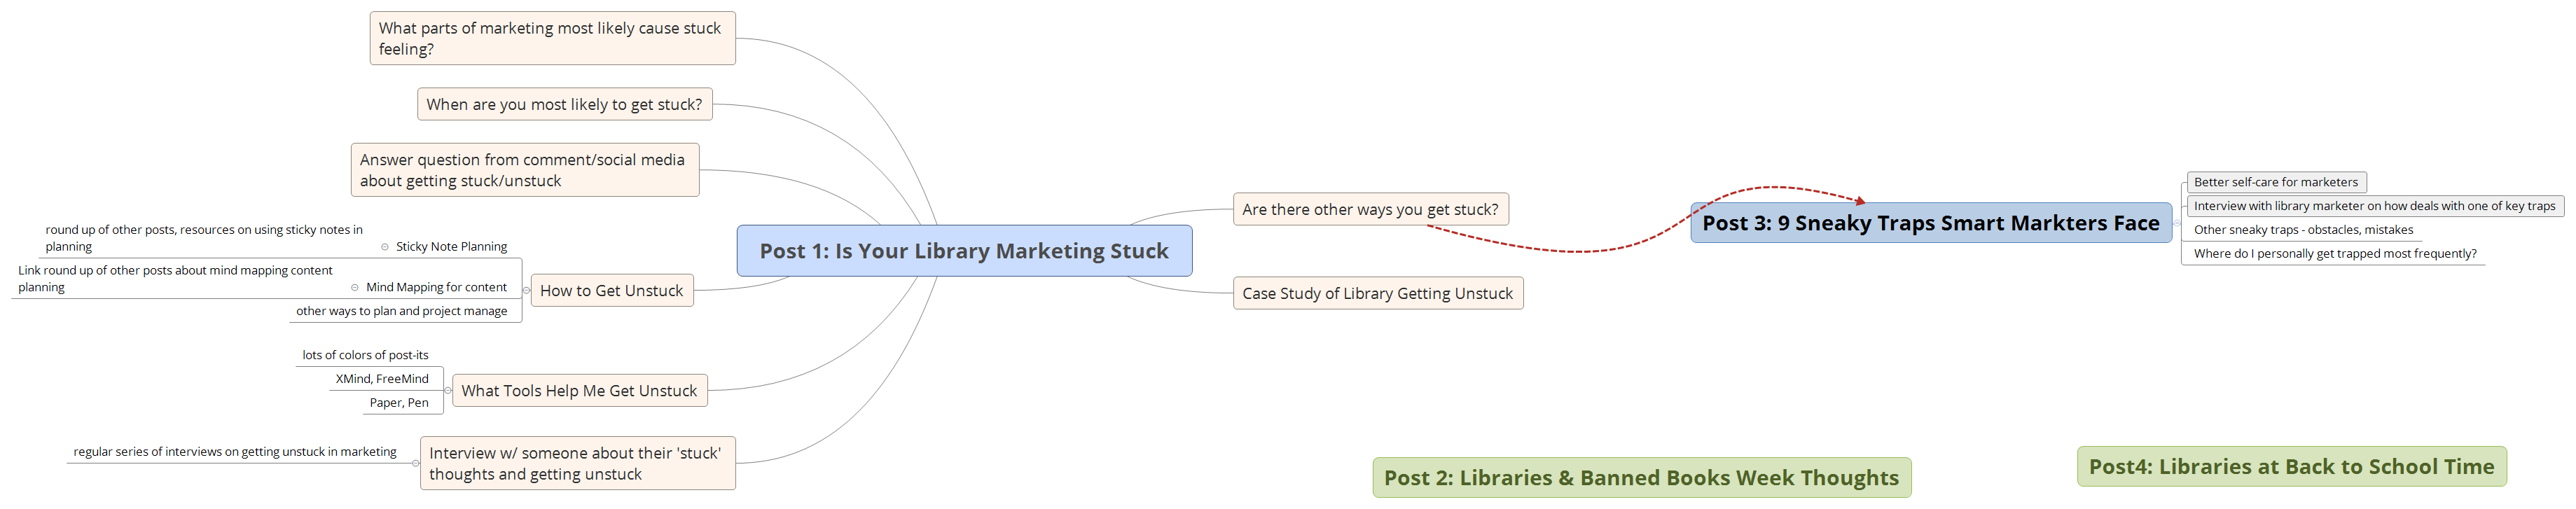 mind mapping for library marketing planning intellicraft research example expanding a blog post for is your